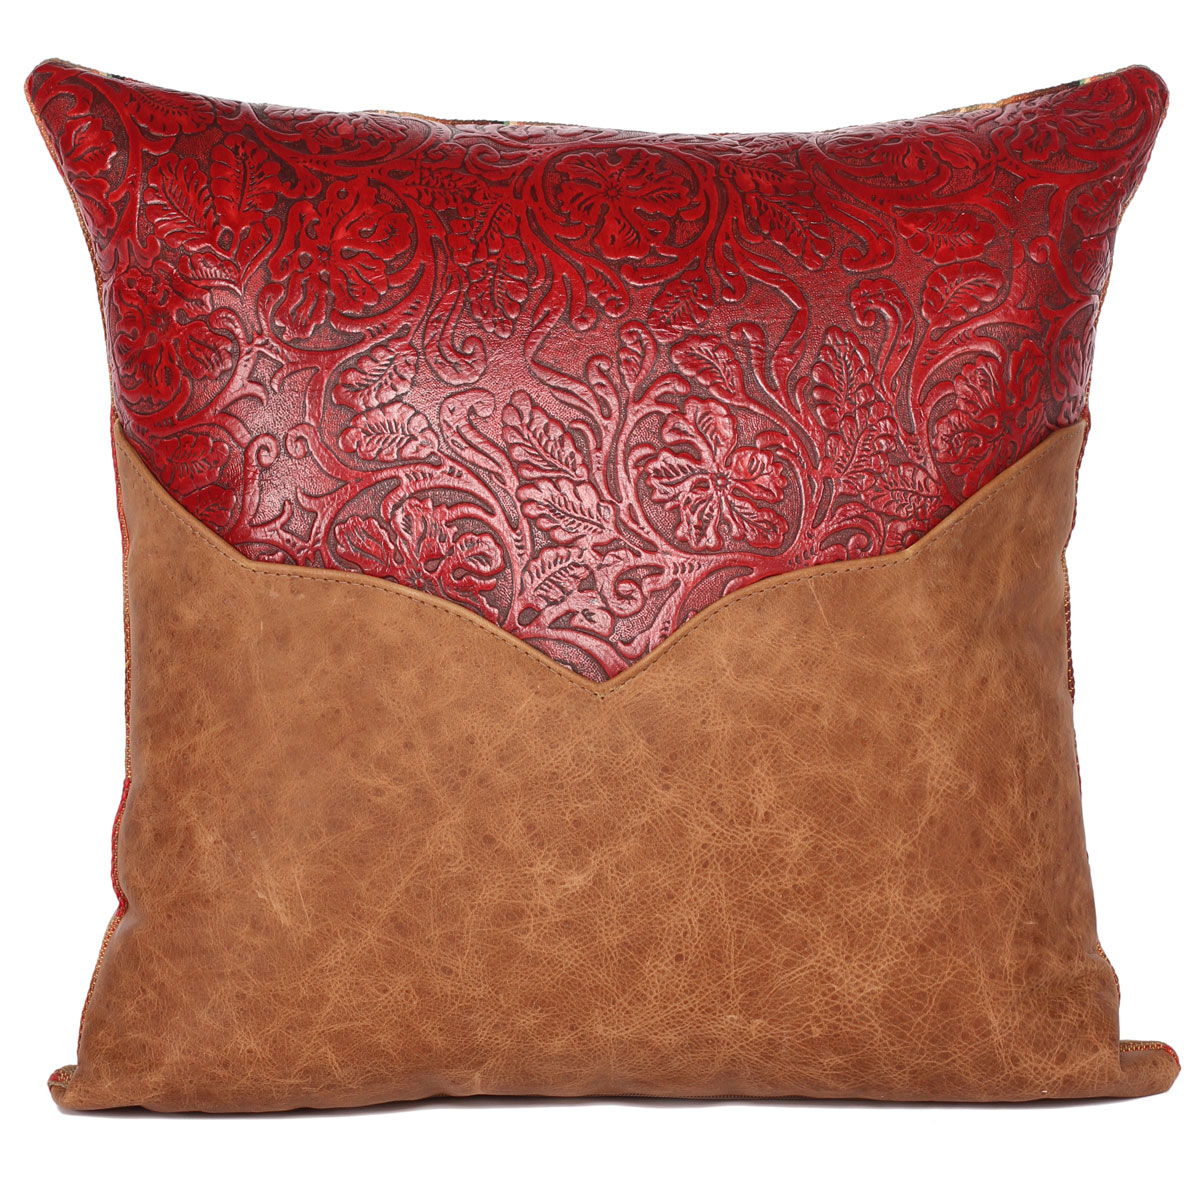 Riata Rose Accent Pillow - 18 x 18